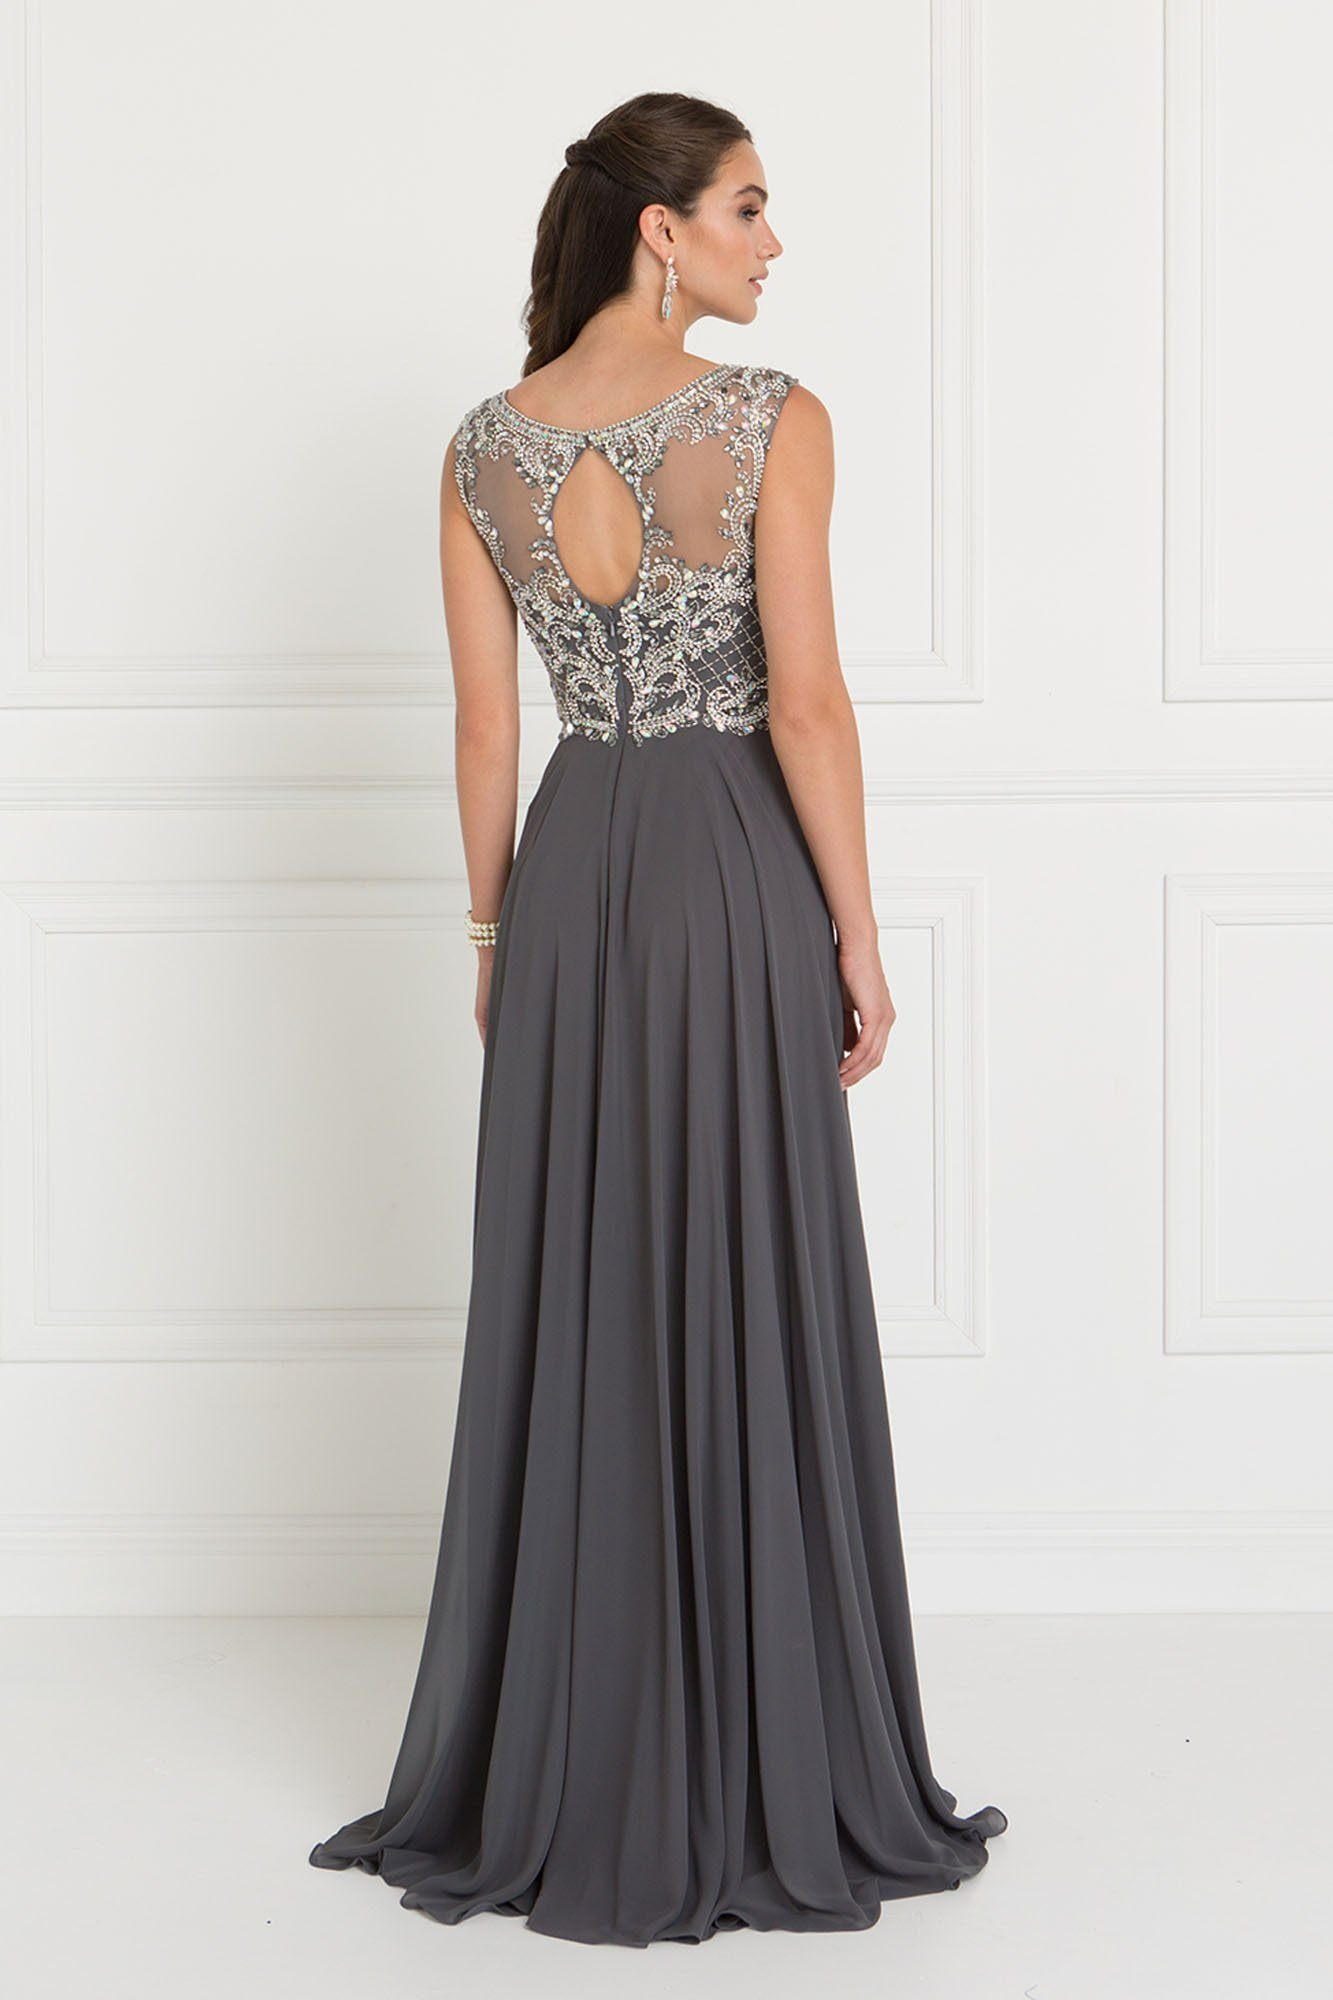 Glamorous evening gown & prom dress – Simply Fab Dress